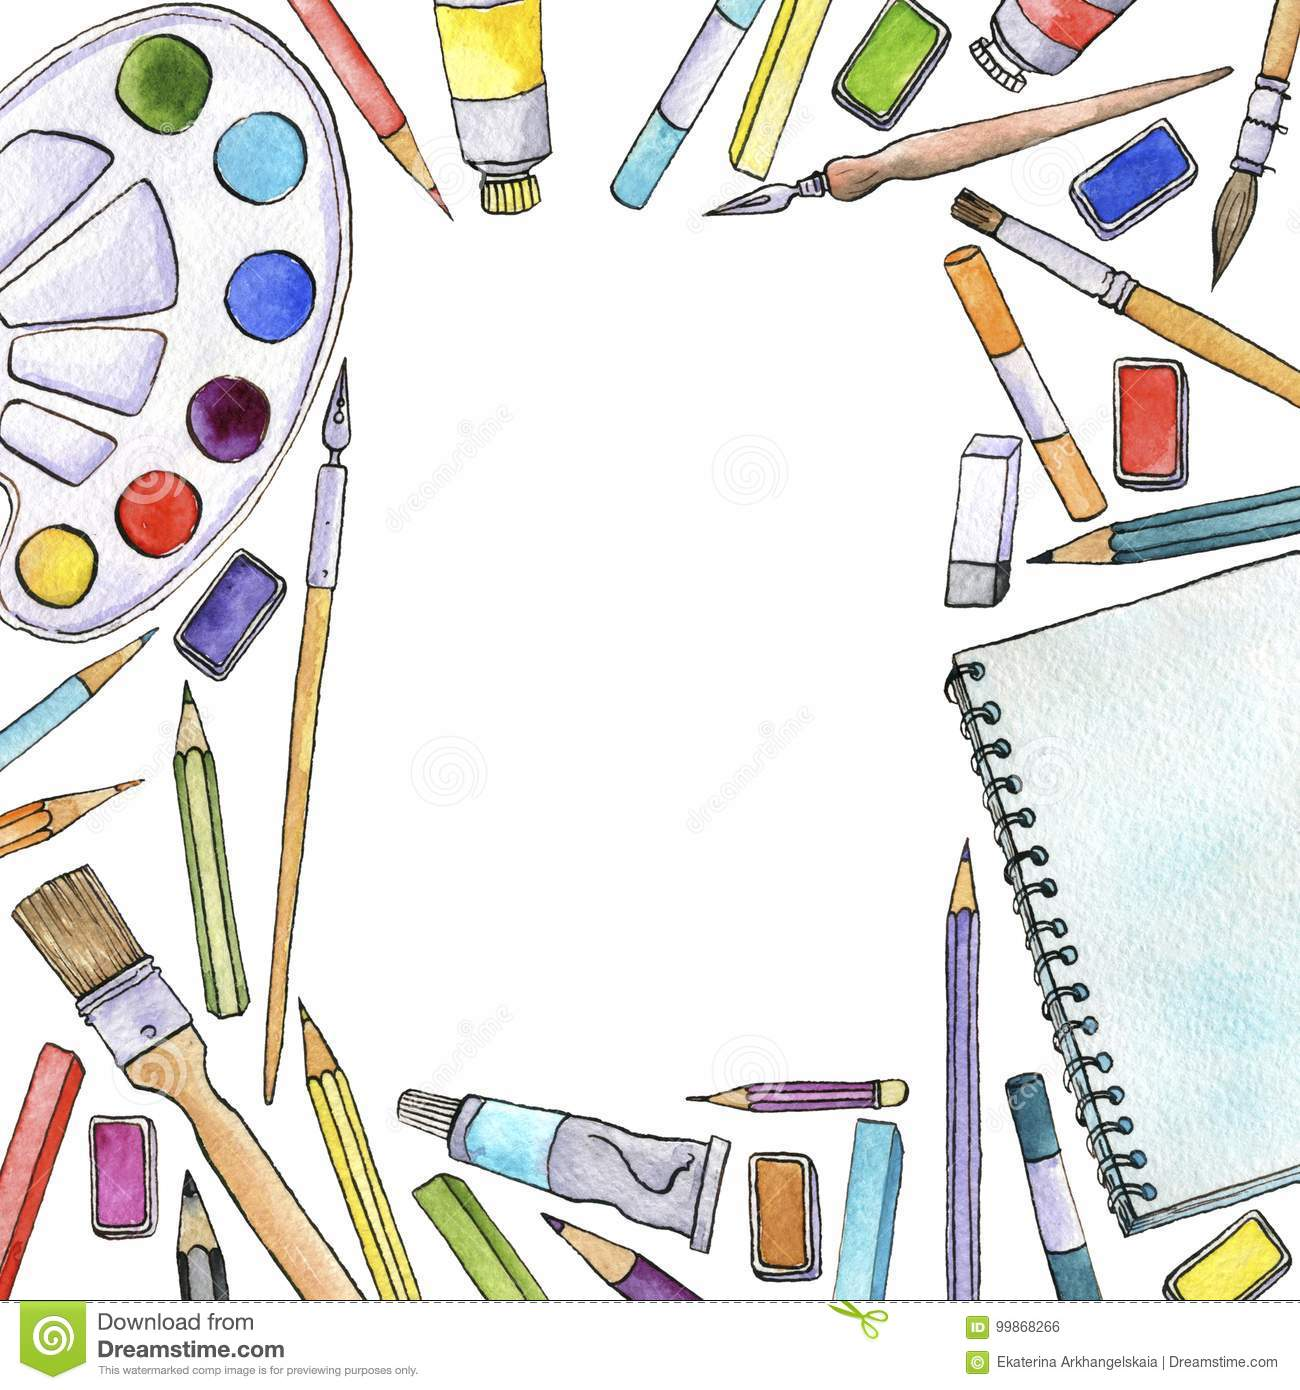 Watercolor Artistic Workspace Stock Illustration.